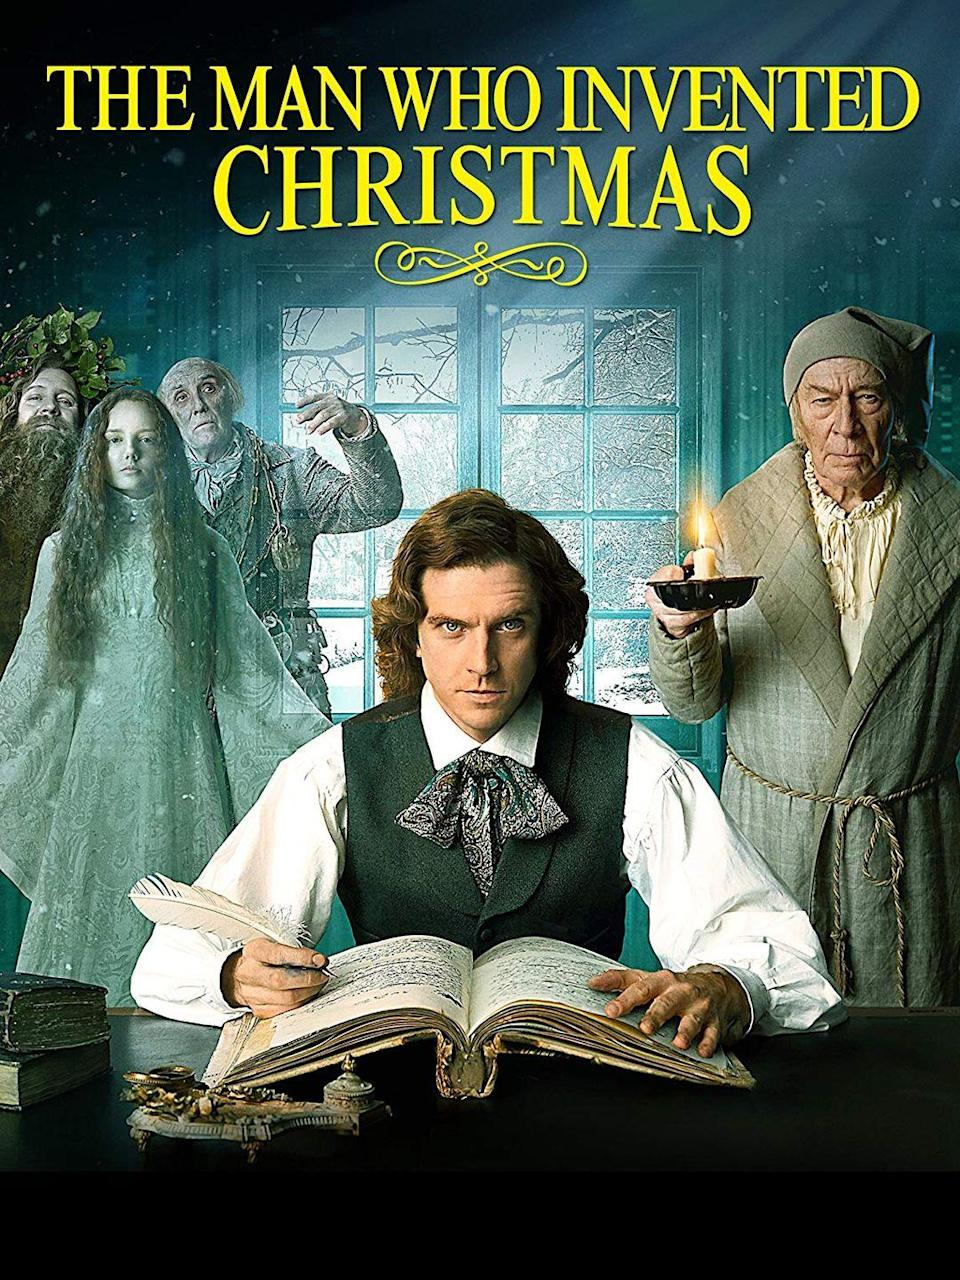 """<p>This story behind the story of how Charles Dickens dreamed up the classic <em>A Christmas Carol</em> stars Dan Stevens (of <em>Downton Abbey</em> fame) and is a delight for all ages. Trust us: This film could jump-start joy even in Scrooge.</p><p><a class=""""link rapid-noclick-resp"""" href=""""https://www.amazon.com/Man-Who-Invented-Christmas/dp/B077MFZMB3/?tag=syn-yahoo-20&ascsubtag=%5Bartid%7C10055.g.1315%5Bsrc%7Cyahoo-us"""" rel=""""nofollow noopener"""" target=""""_blank"""" data-ylk=""""slk:WATCH NOW"""">WATCH NOW</a></p>"""